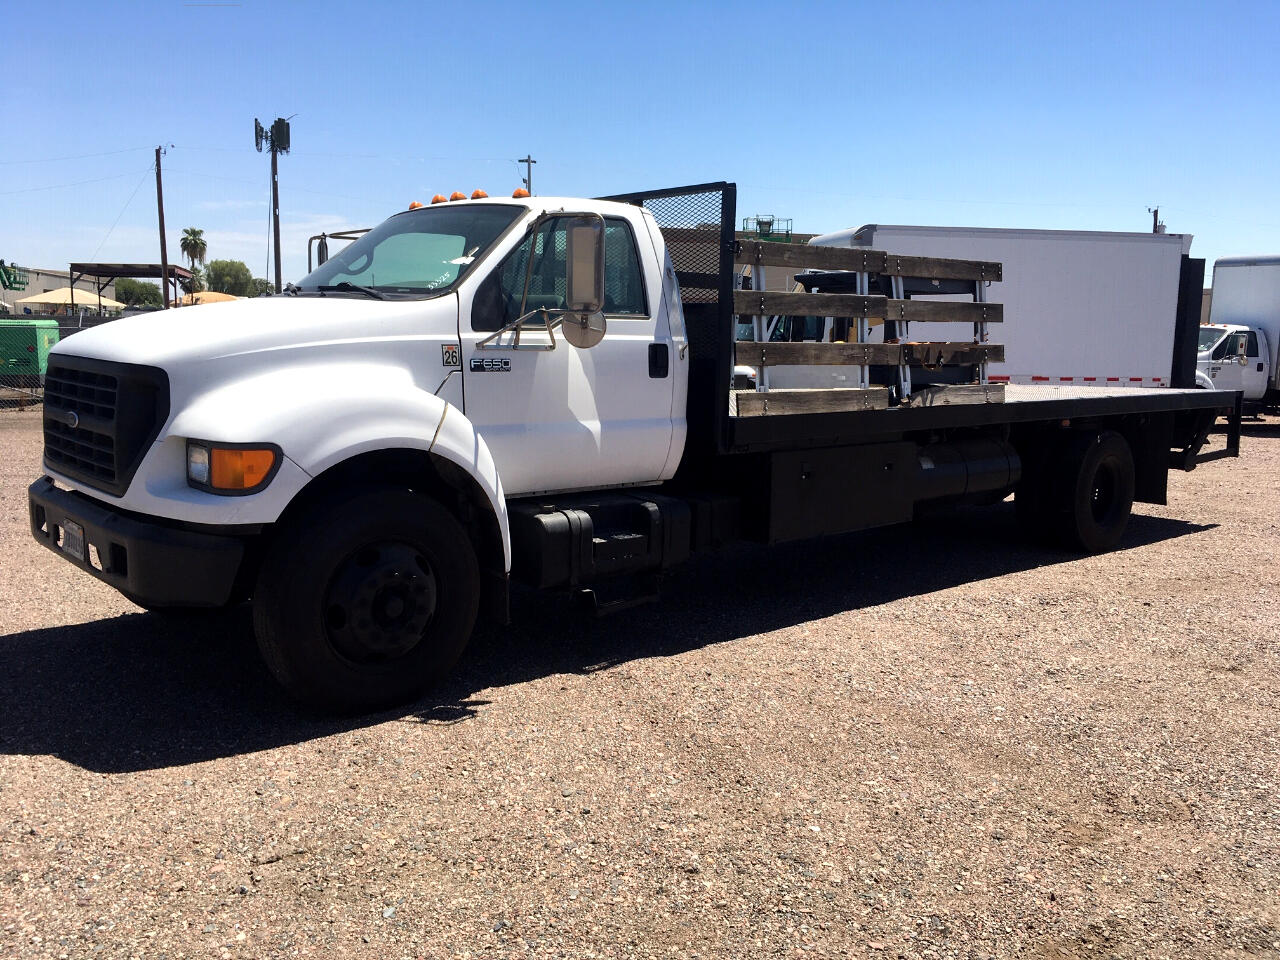 2003 Ford Super Duty F-650 Reg Cab XL, 26,000 GVWR